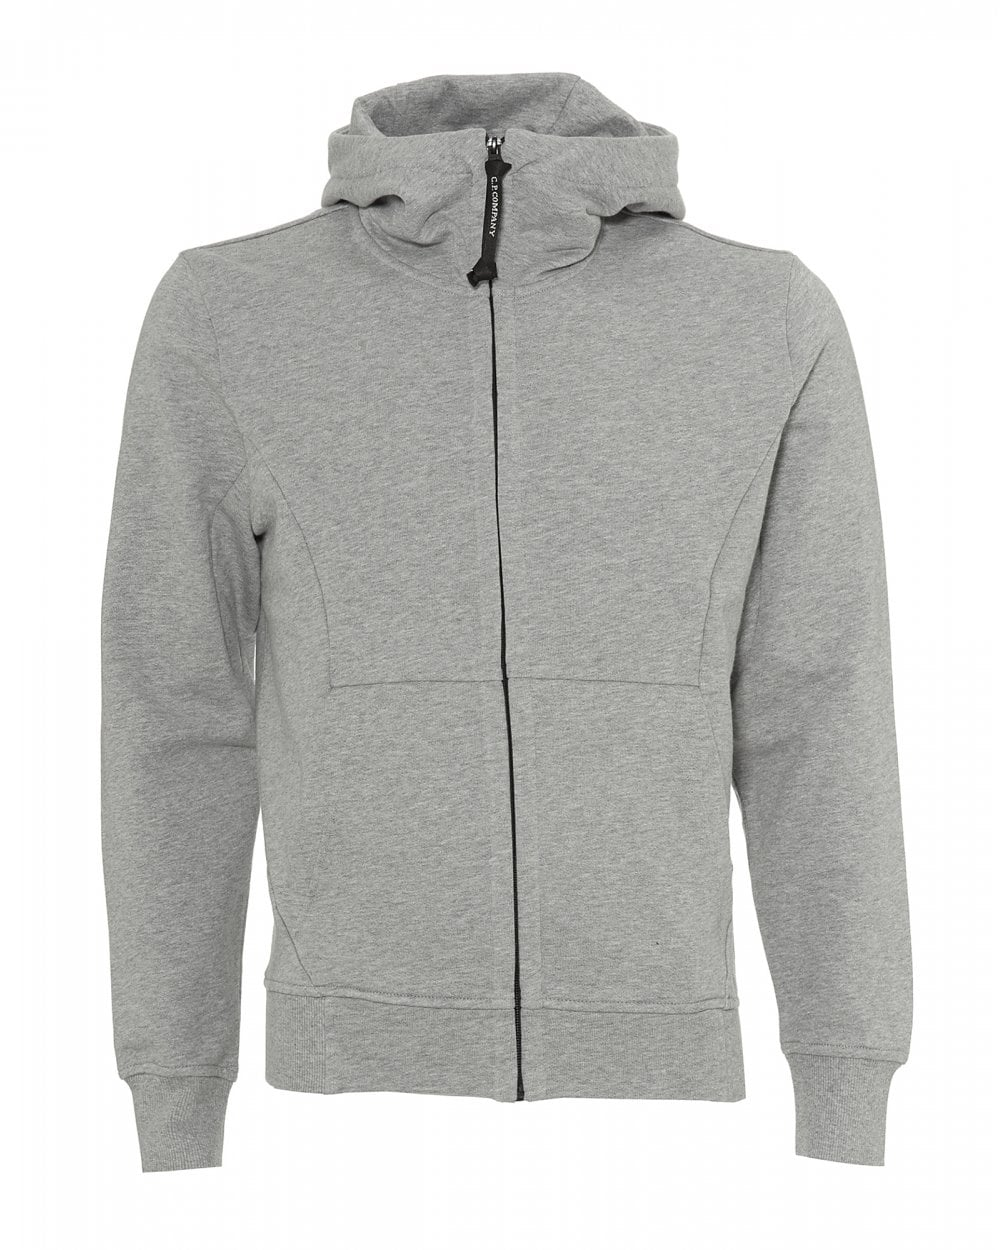 fb06cebe C.P. Company Mens Zip Up Hoodie, Goggle Hood Grey Sweatshirt